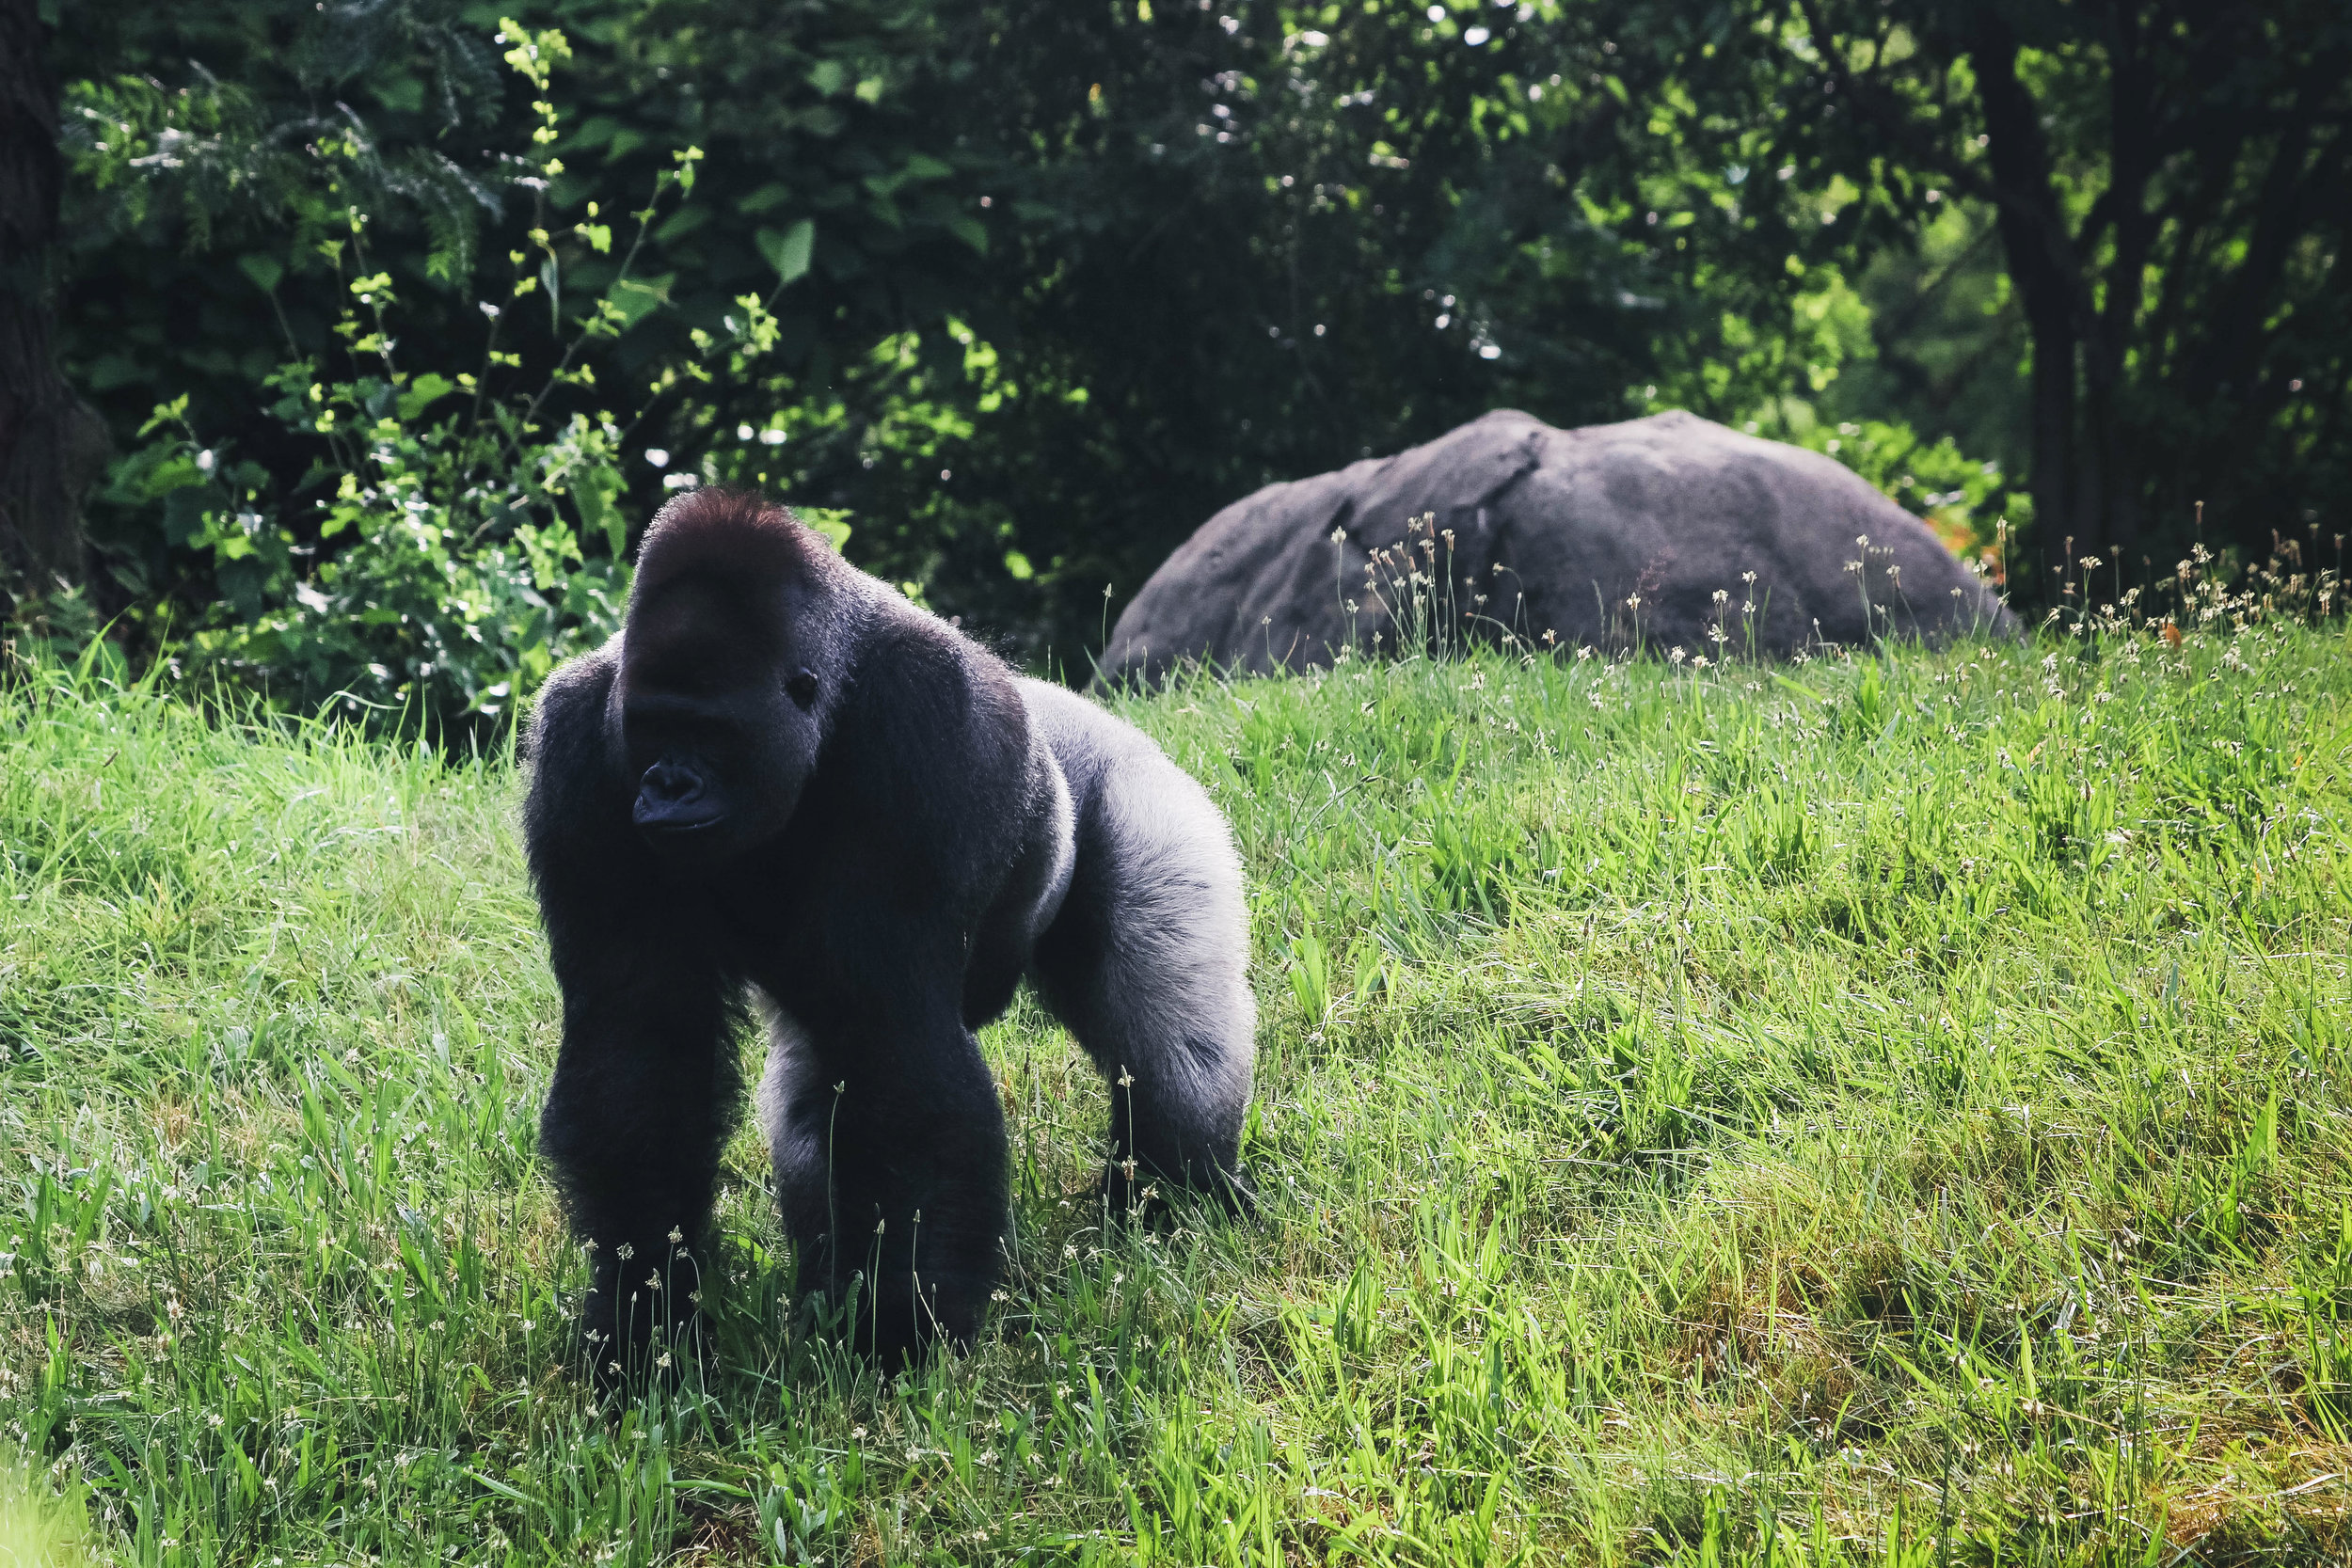 Gorilla at the Detroit Zoo   Image by Taylor Ifland Photography